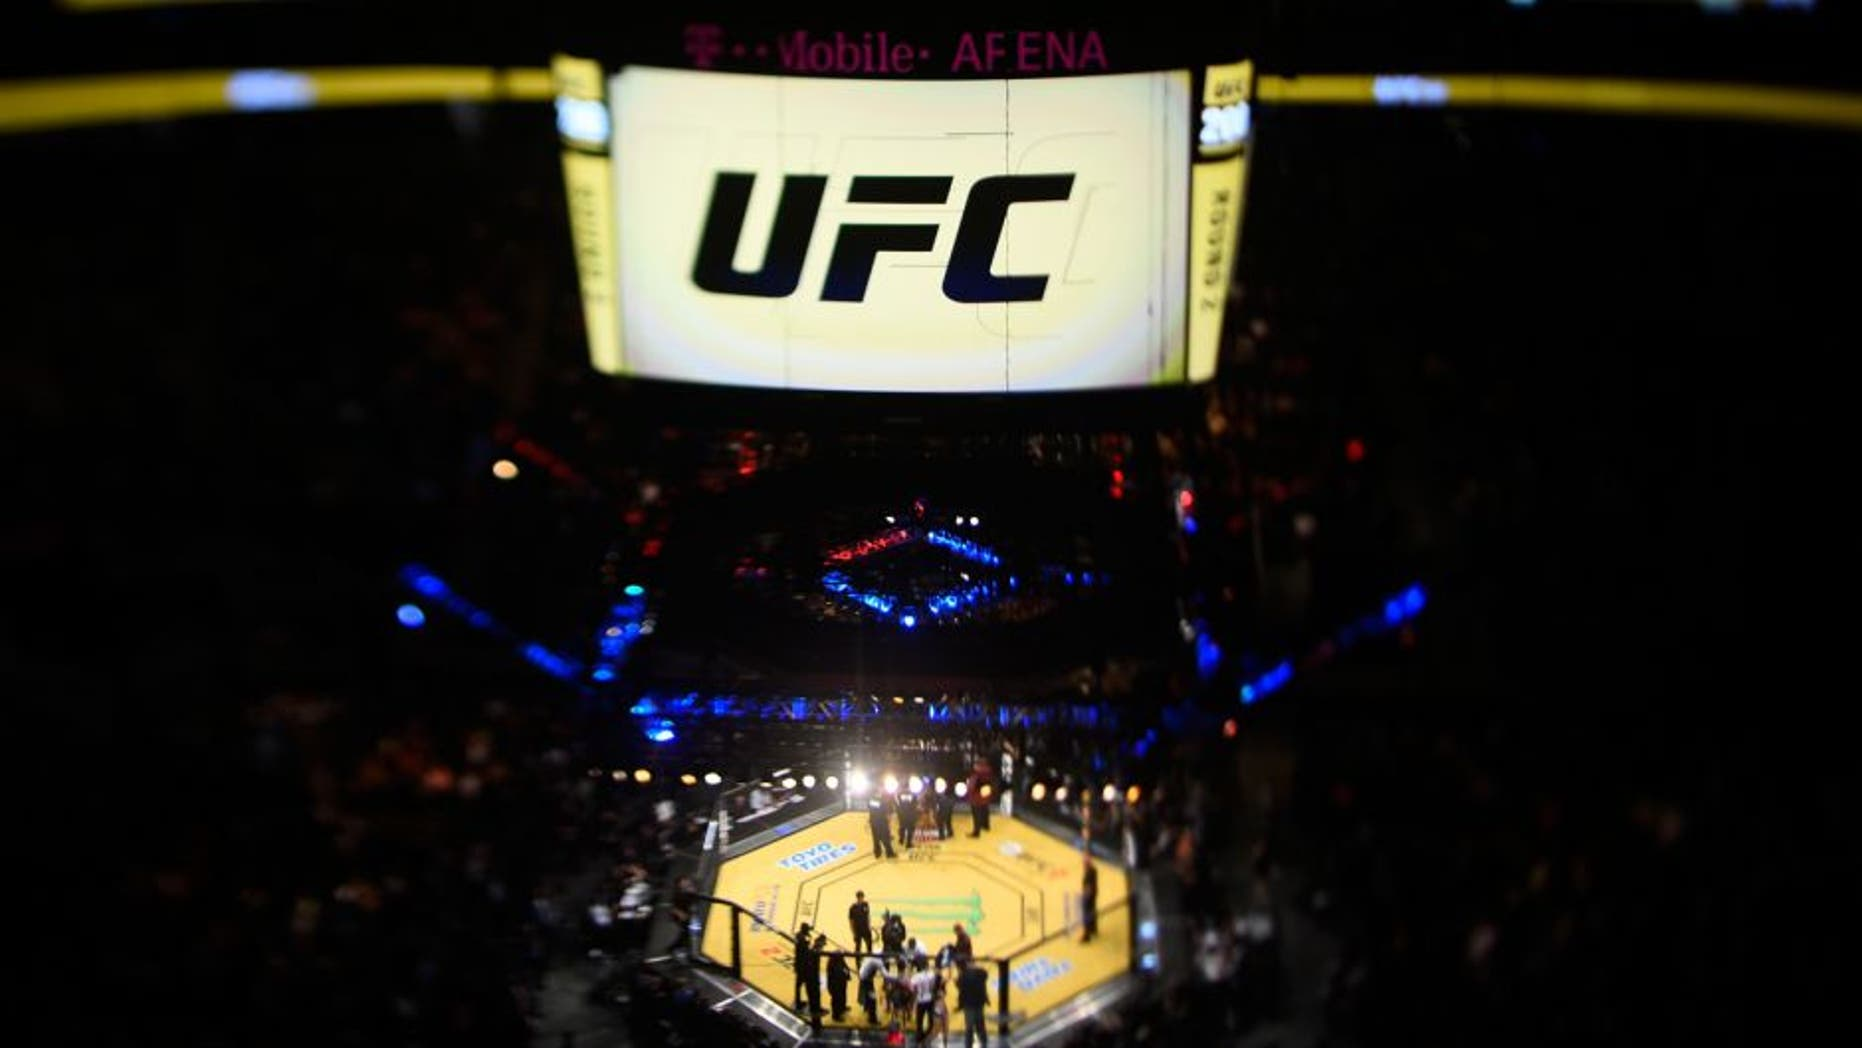 LAS VEGAS, NV - JULY 09: (EDITORS NOTE: Image was created using a variable planed lens.) An overhead view of the Octagon during the UFC 200 event on July 9, 2016 at T-Mobile Arena in Las Vegas, Nevada. (Photo by Jeff Bottari/Zuffa LLC/Zuffa LLC via Getty Images)